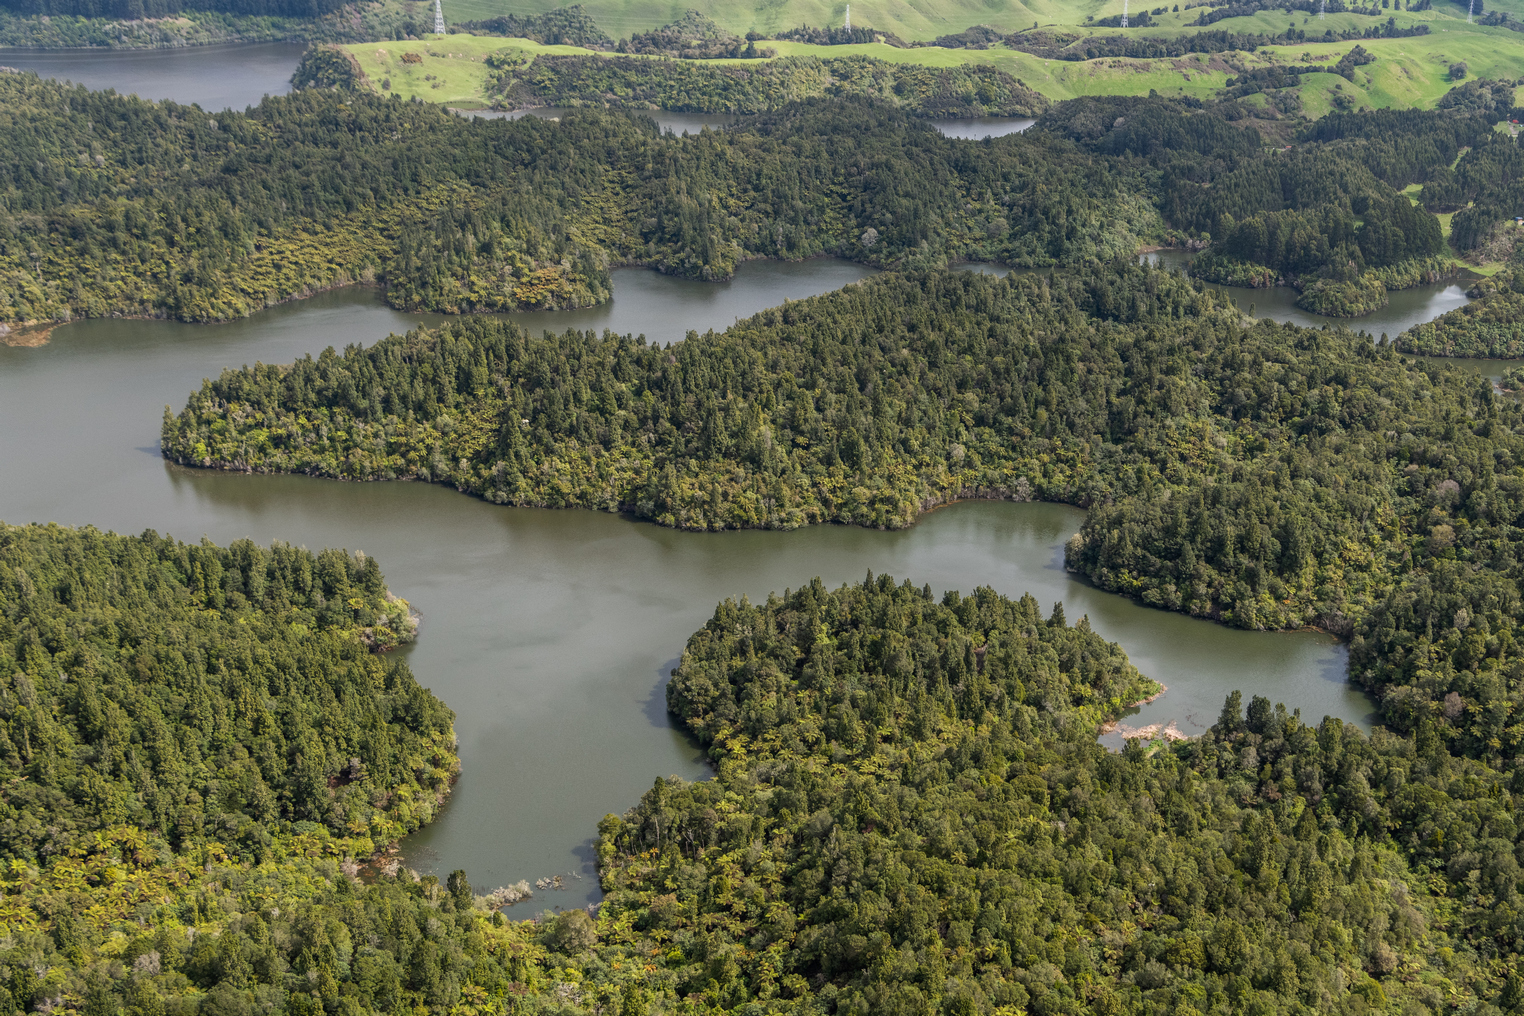 Flying over Lake Rotoehu in the Rotorua region